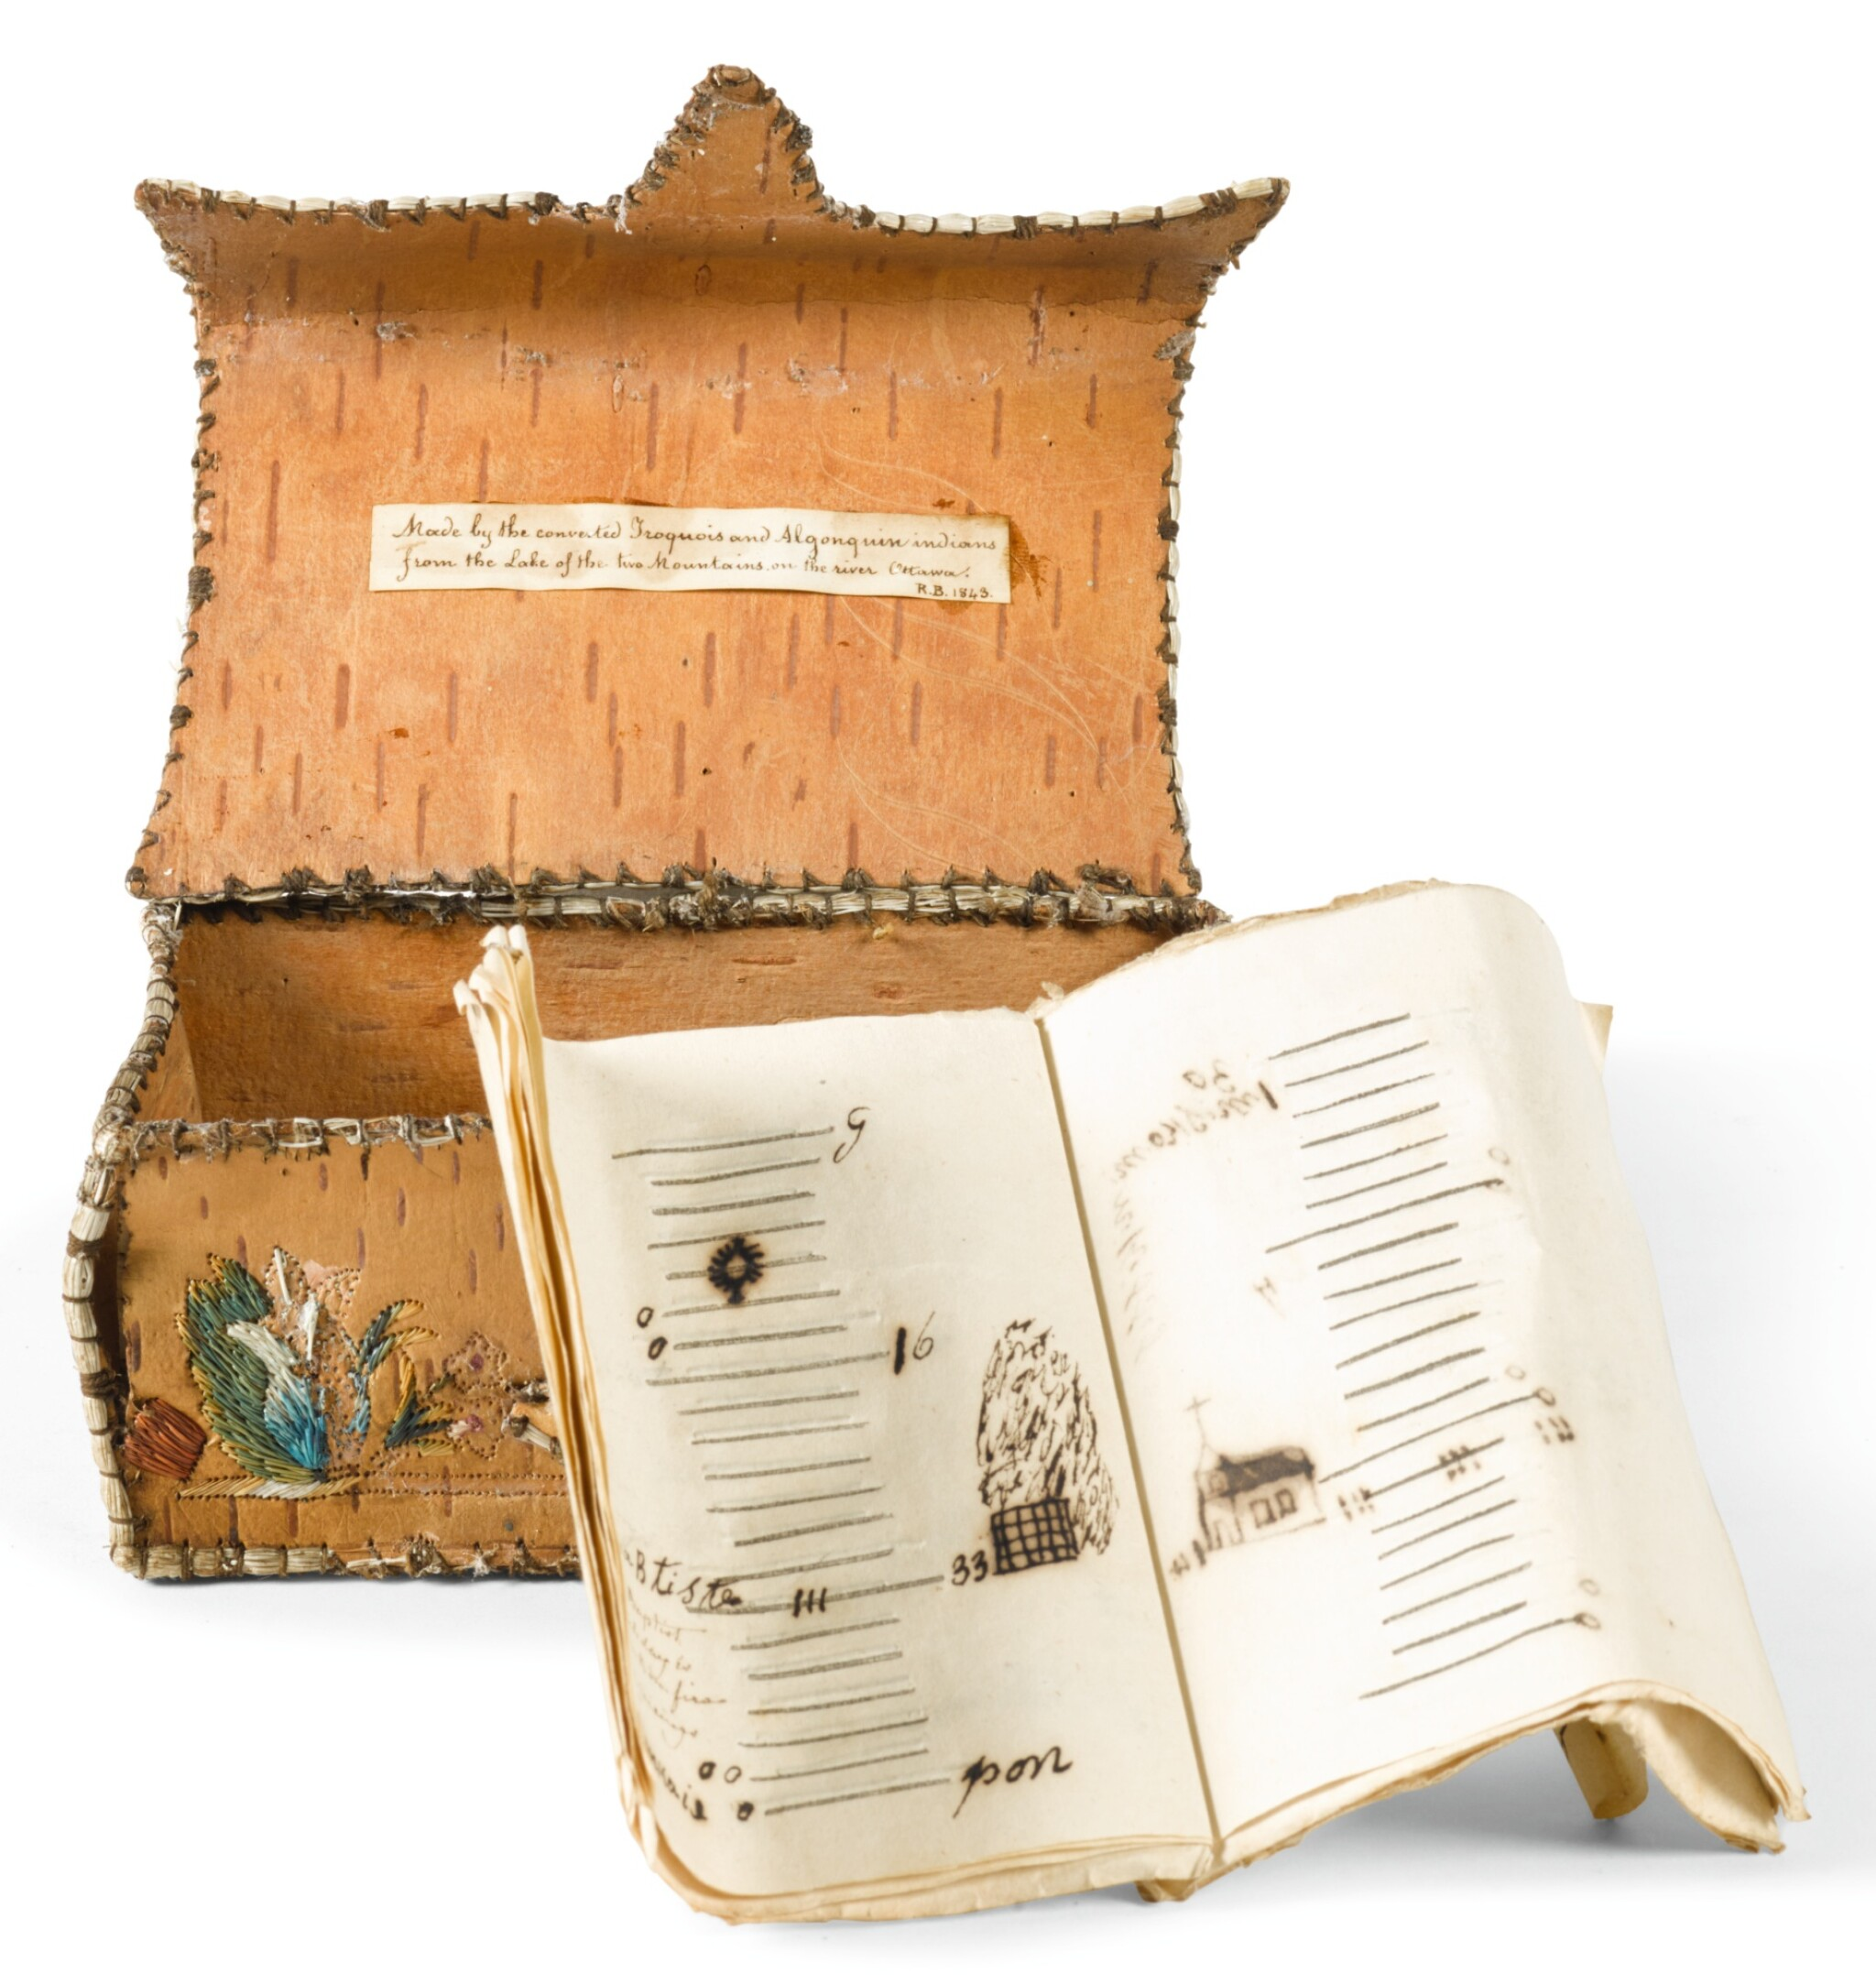 View 1 of Lot 197. A NORTHEASTERN EMBROIDERED BIRCHBARK BOX AND ALMANAC.